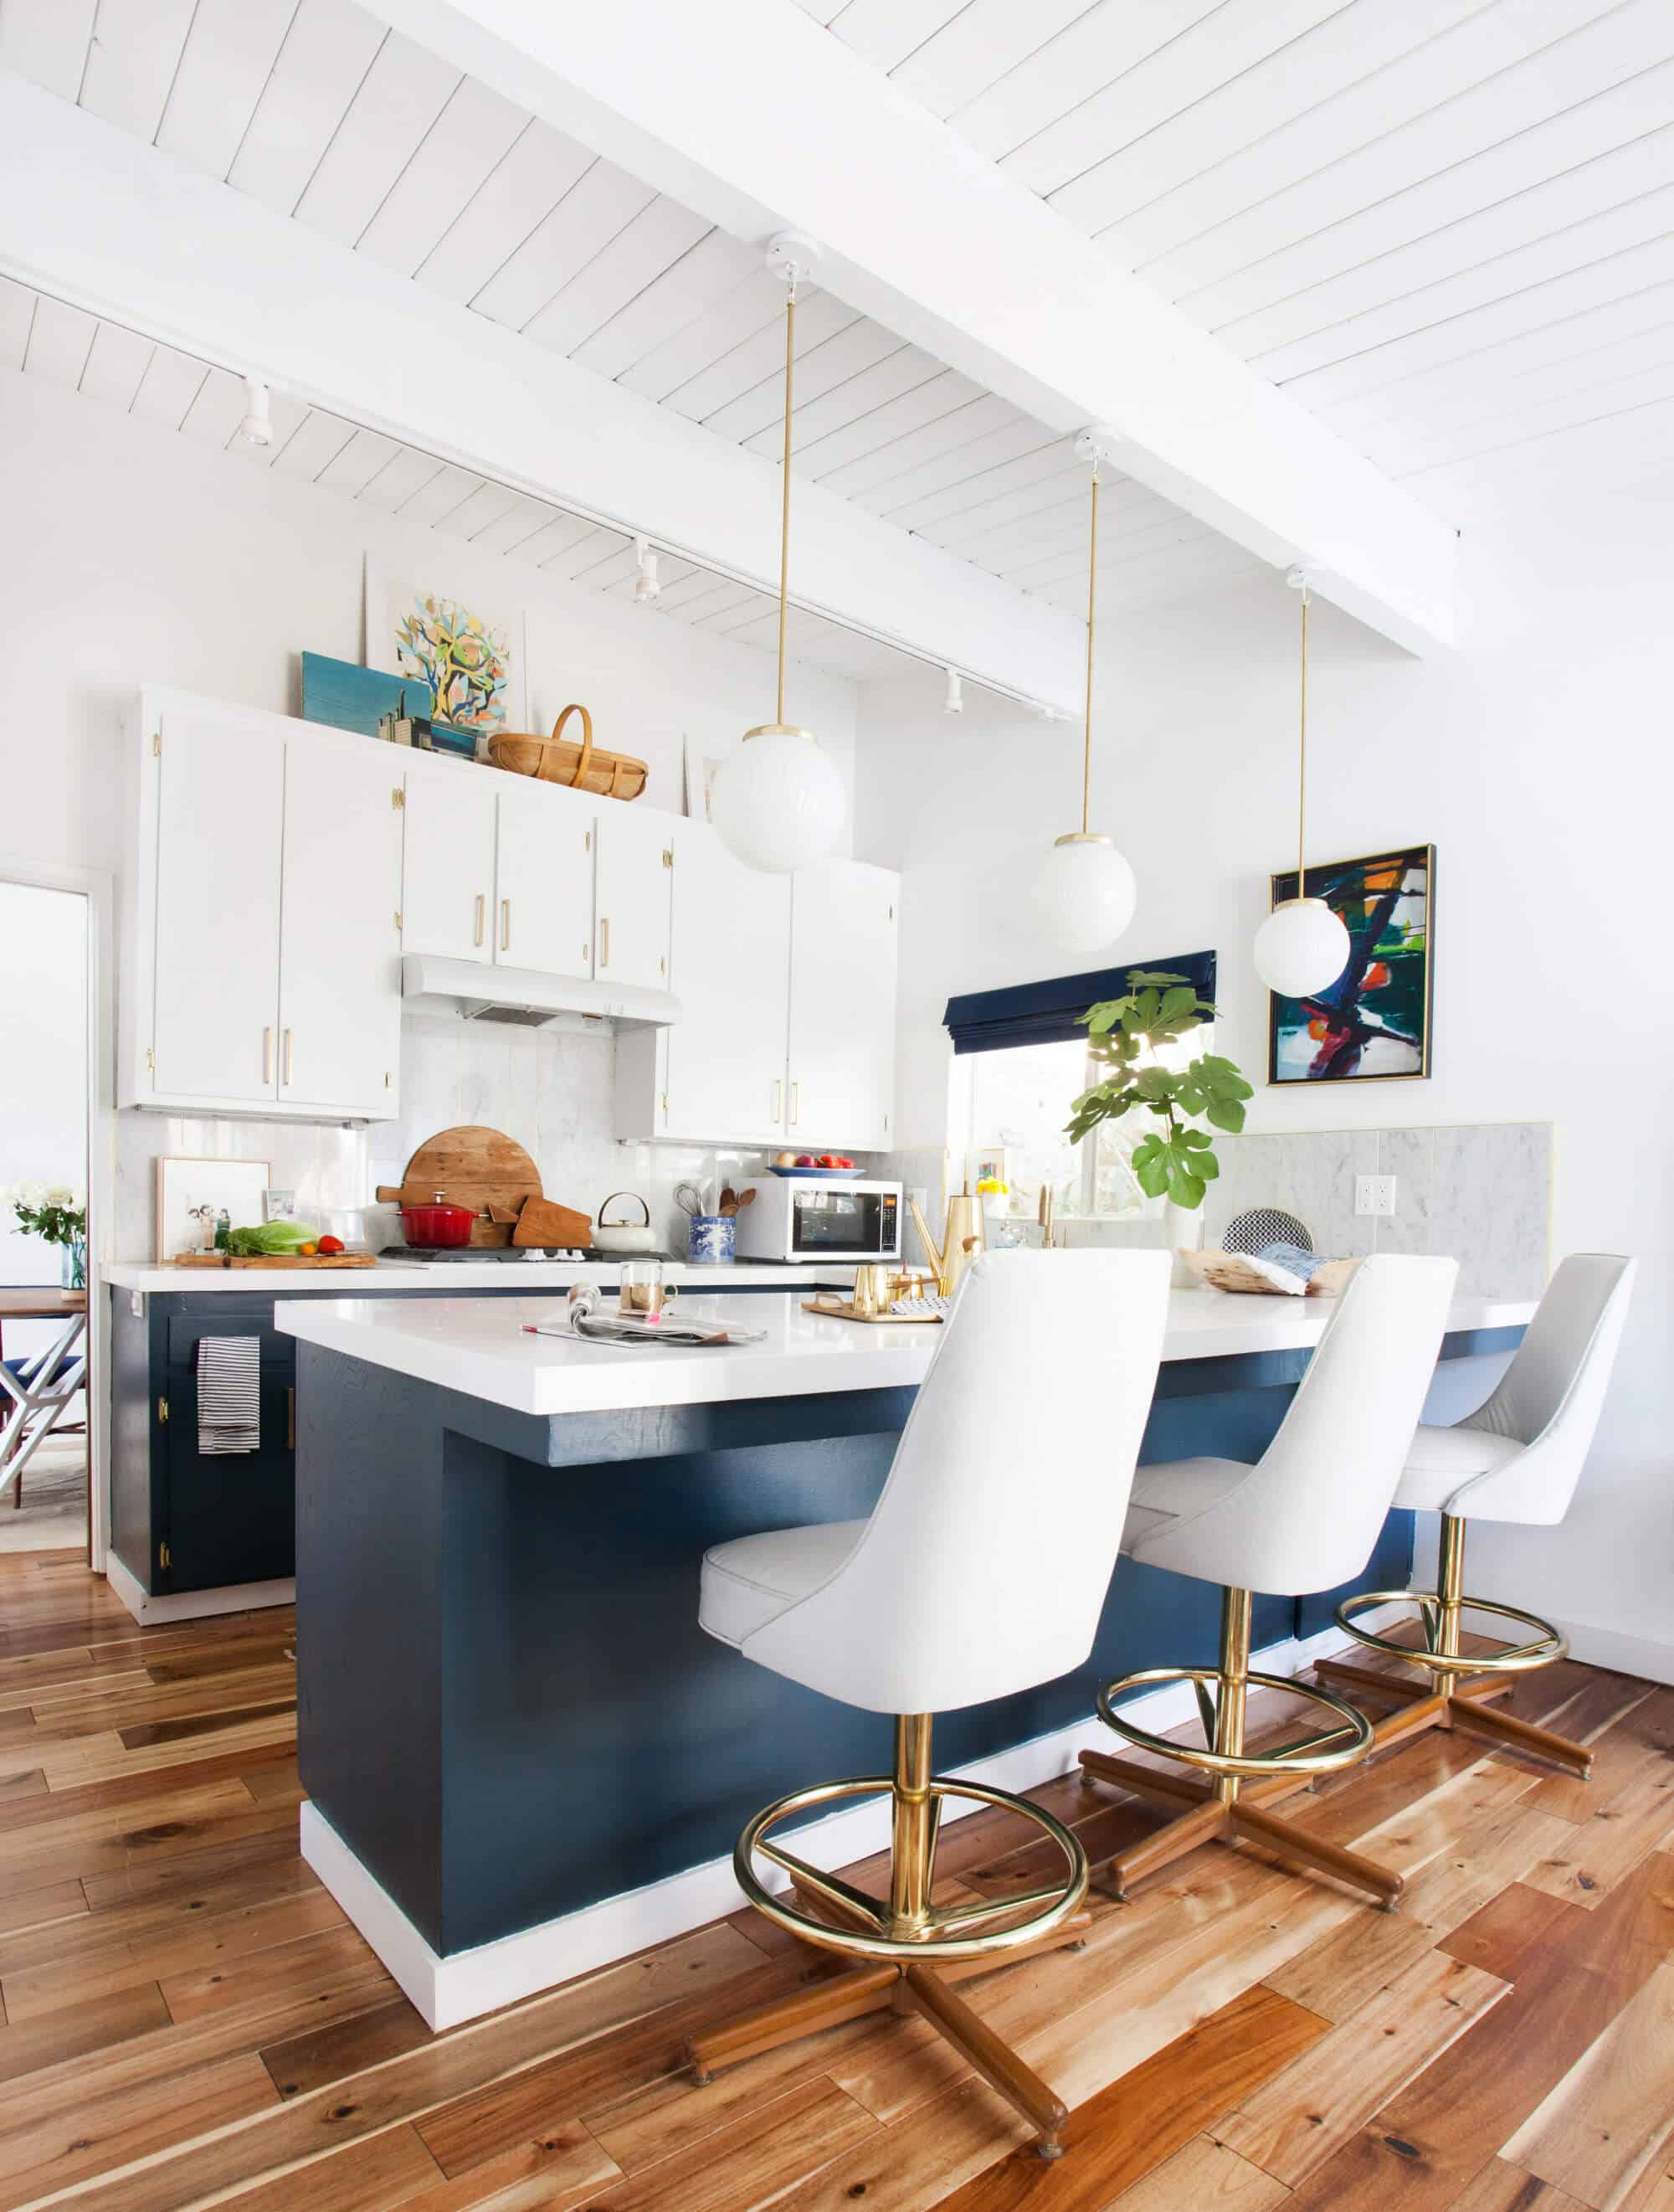 brass hardware kitchen ninja mega system bl771 the ultimate counter and bar stool roundup emily henderson